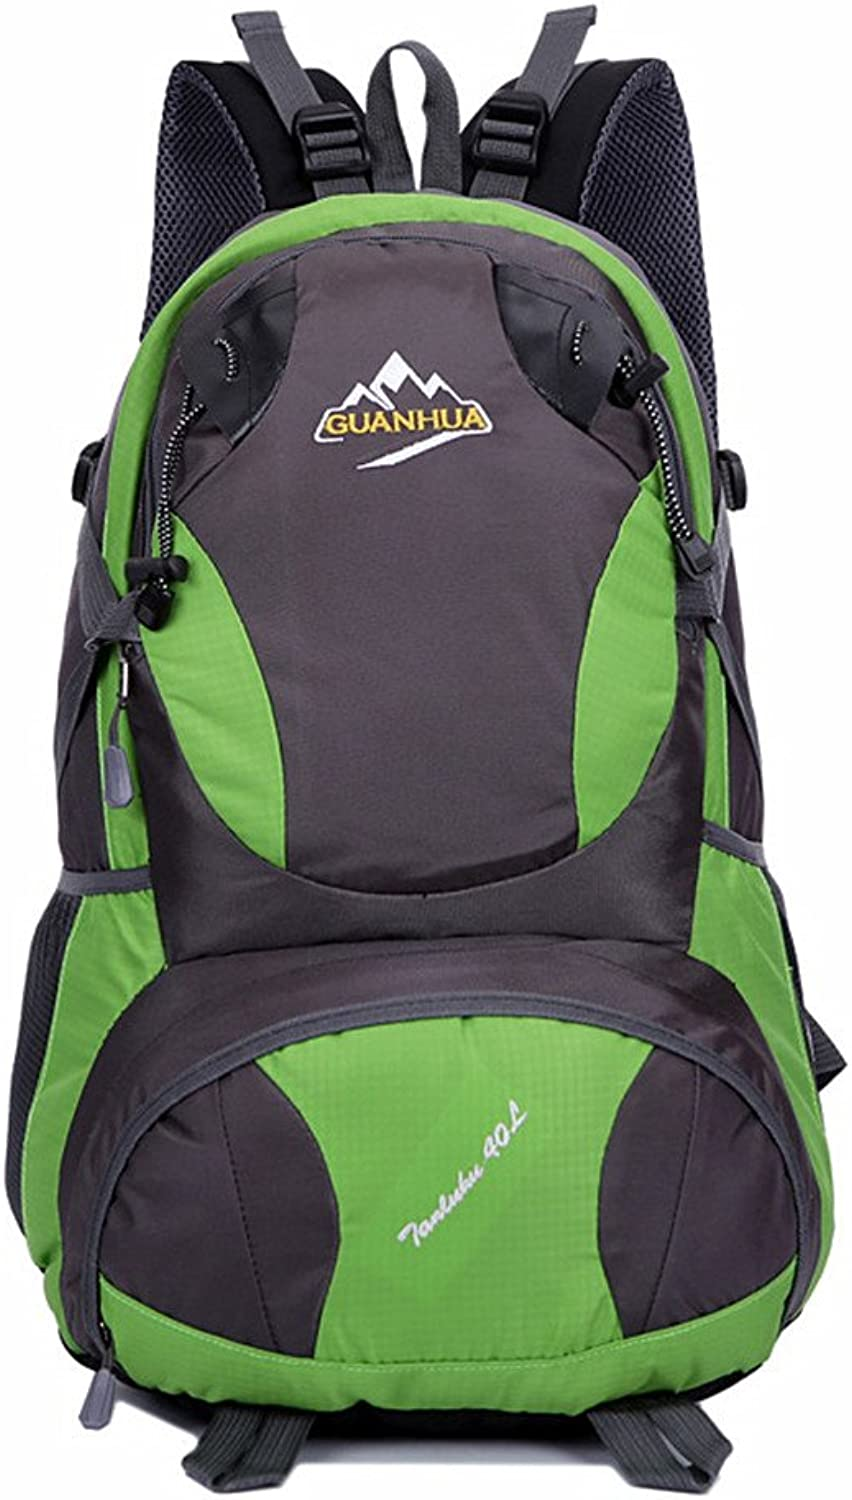 Backpacks Waterproof Shoulder Pad MultiFunction Travel Hiking Camp Hiking Backpack Suitable for Outdoor Sports (color   Green)